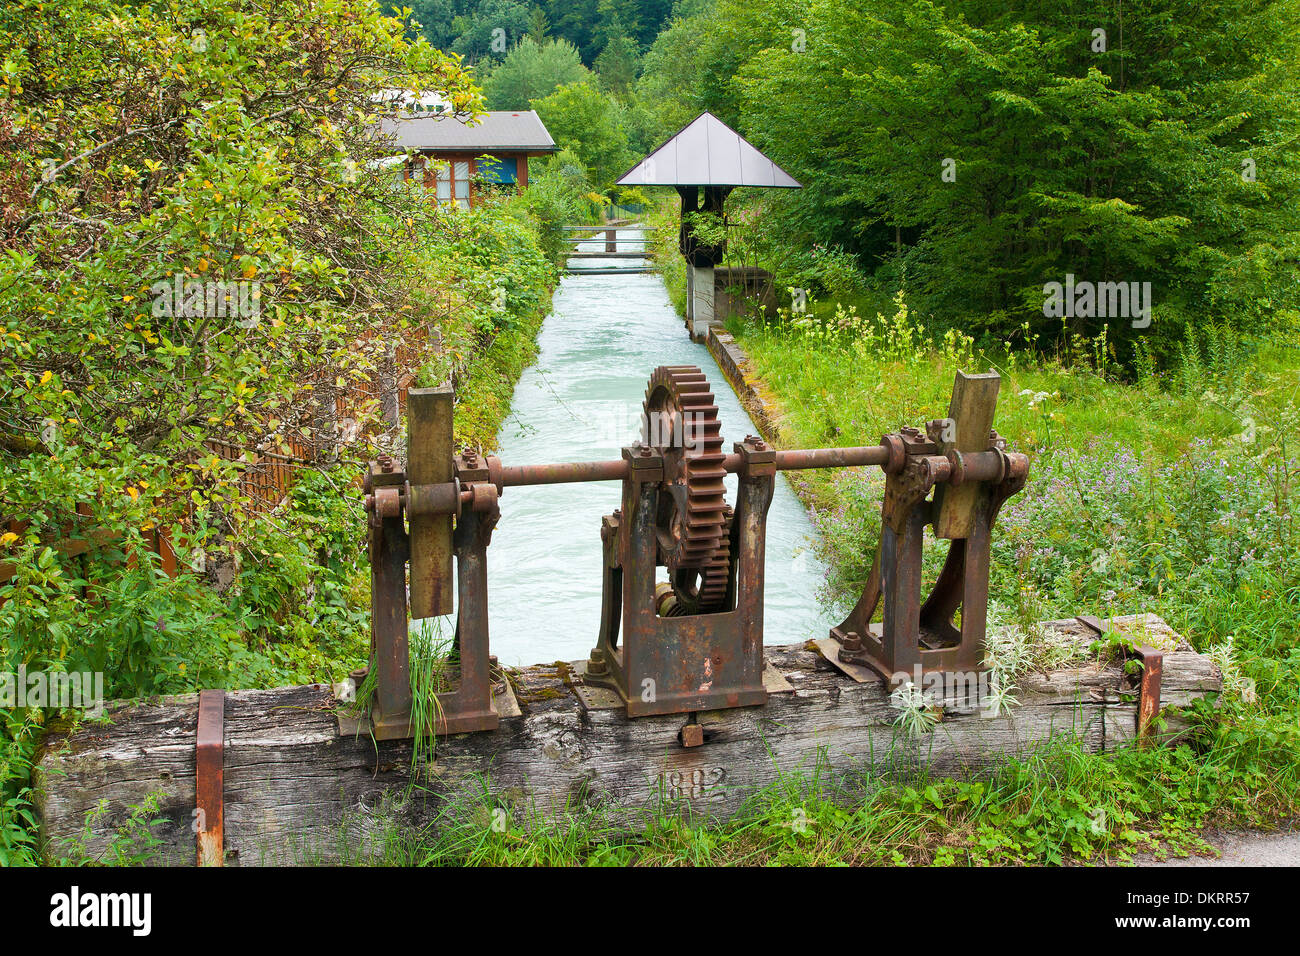 Austria Austria Salzburg water way drinking water water supply canal channel alp canal alp arm sluice floodgate Stock Photo